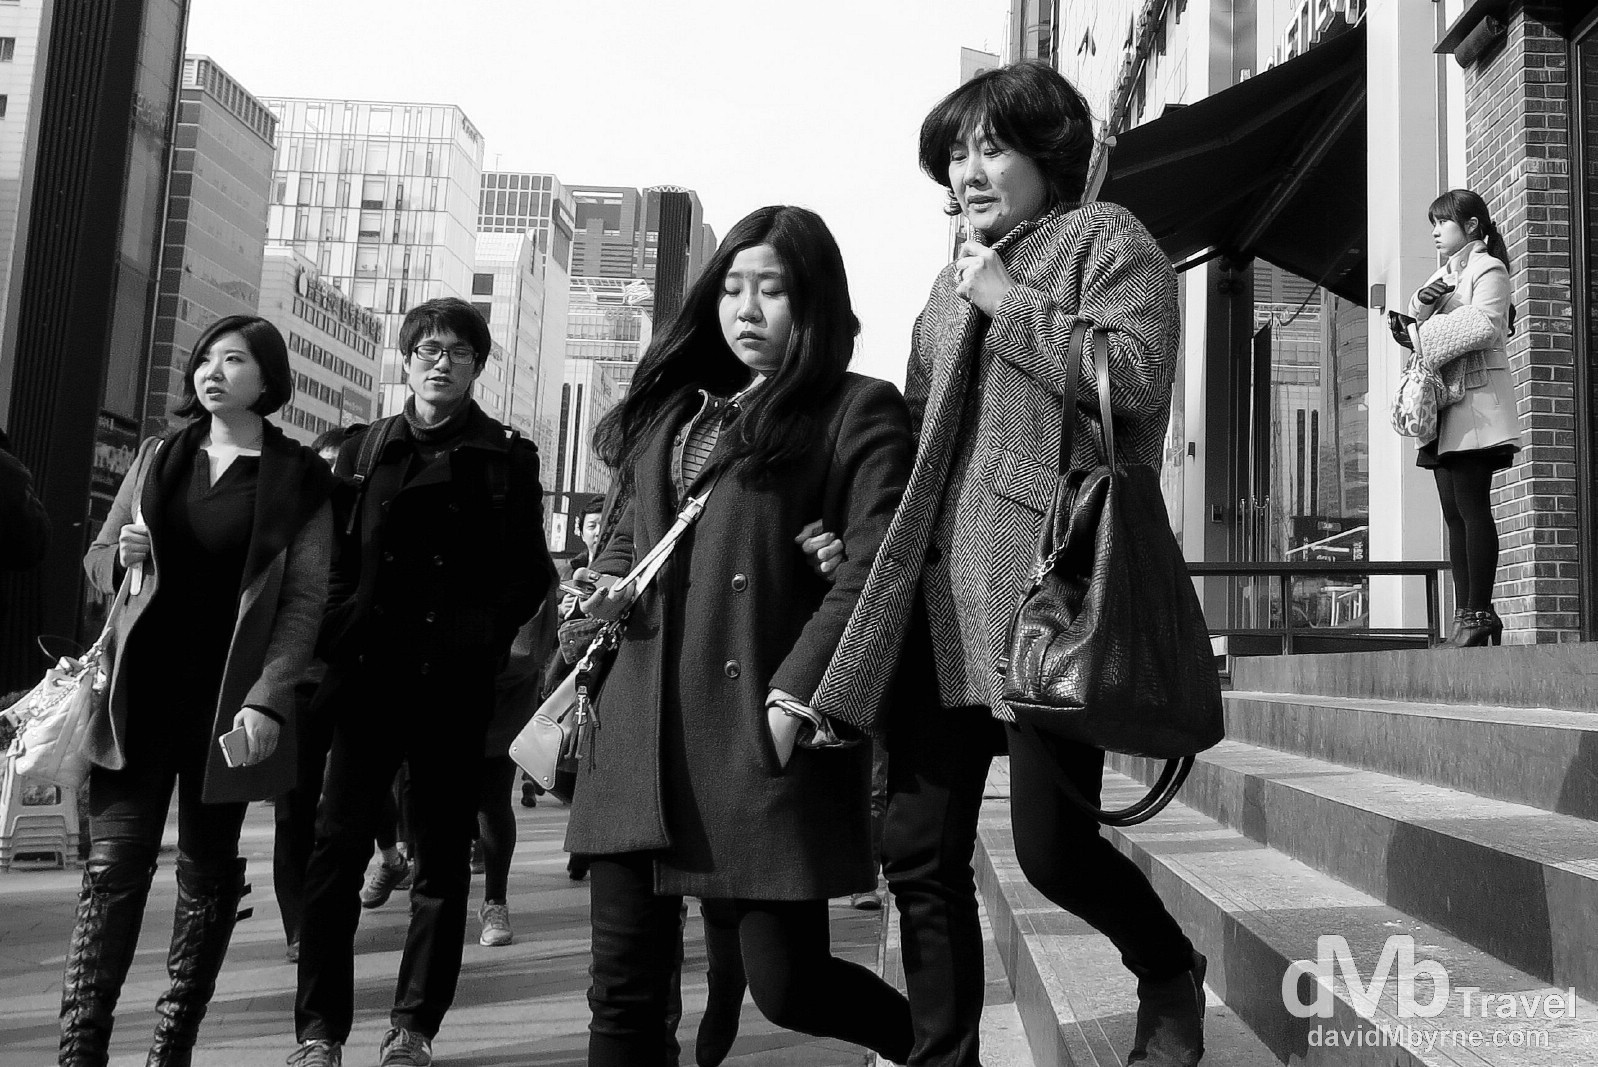 On the cold streets of the Gangnam district of Seoul, South Korea. February 26th 2013.